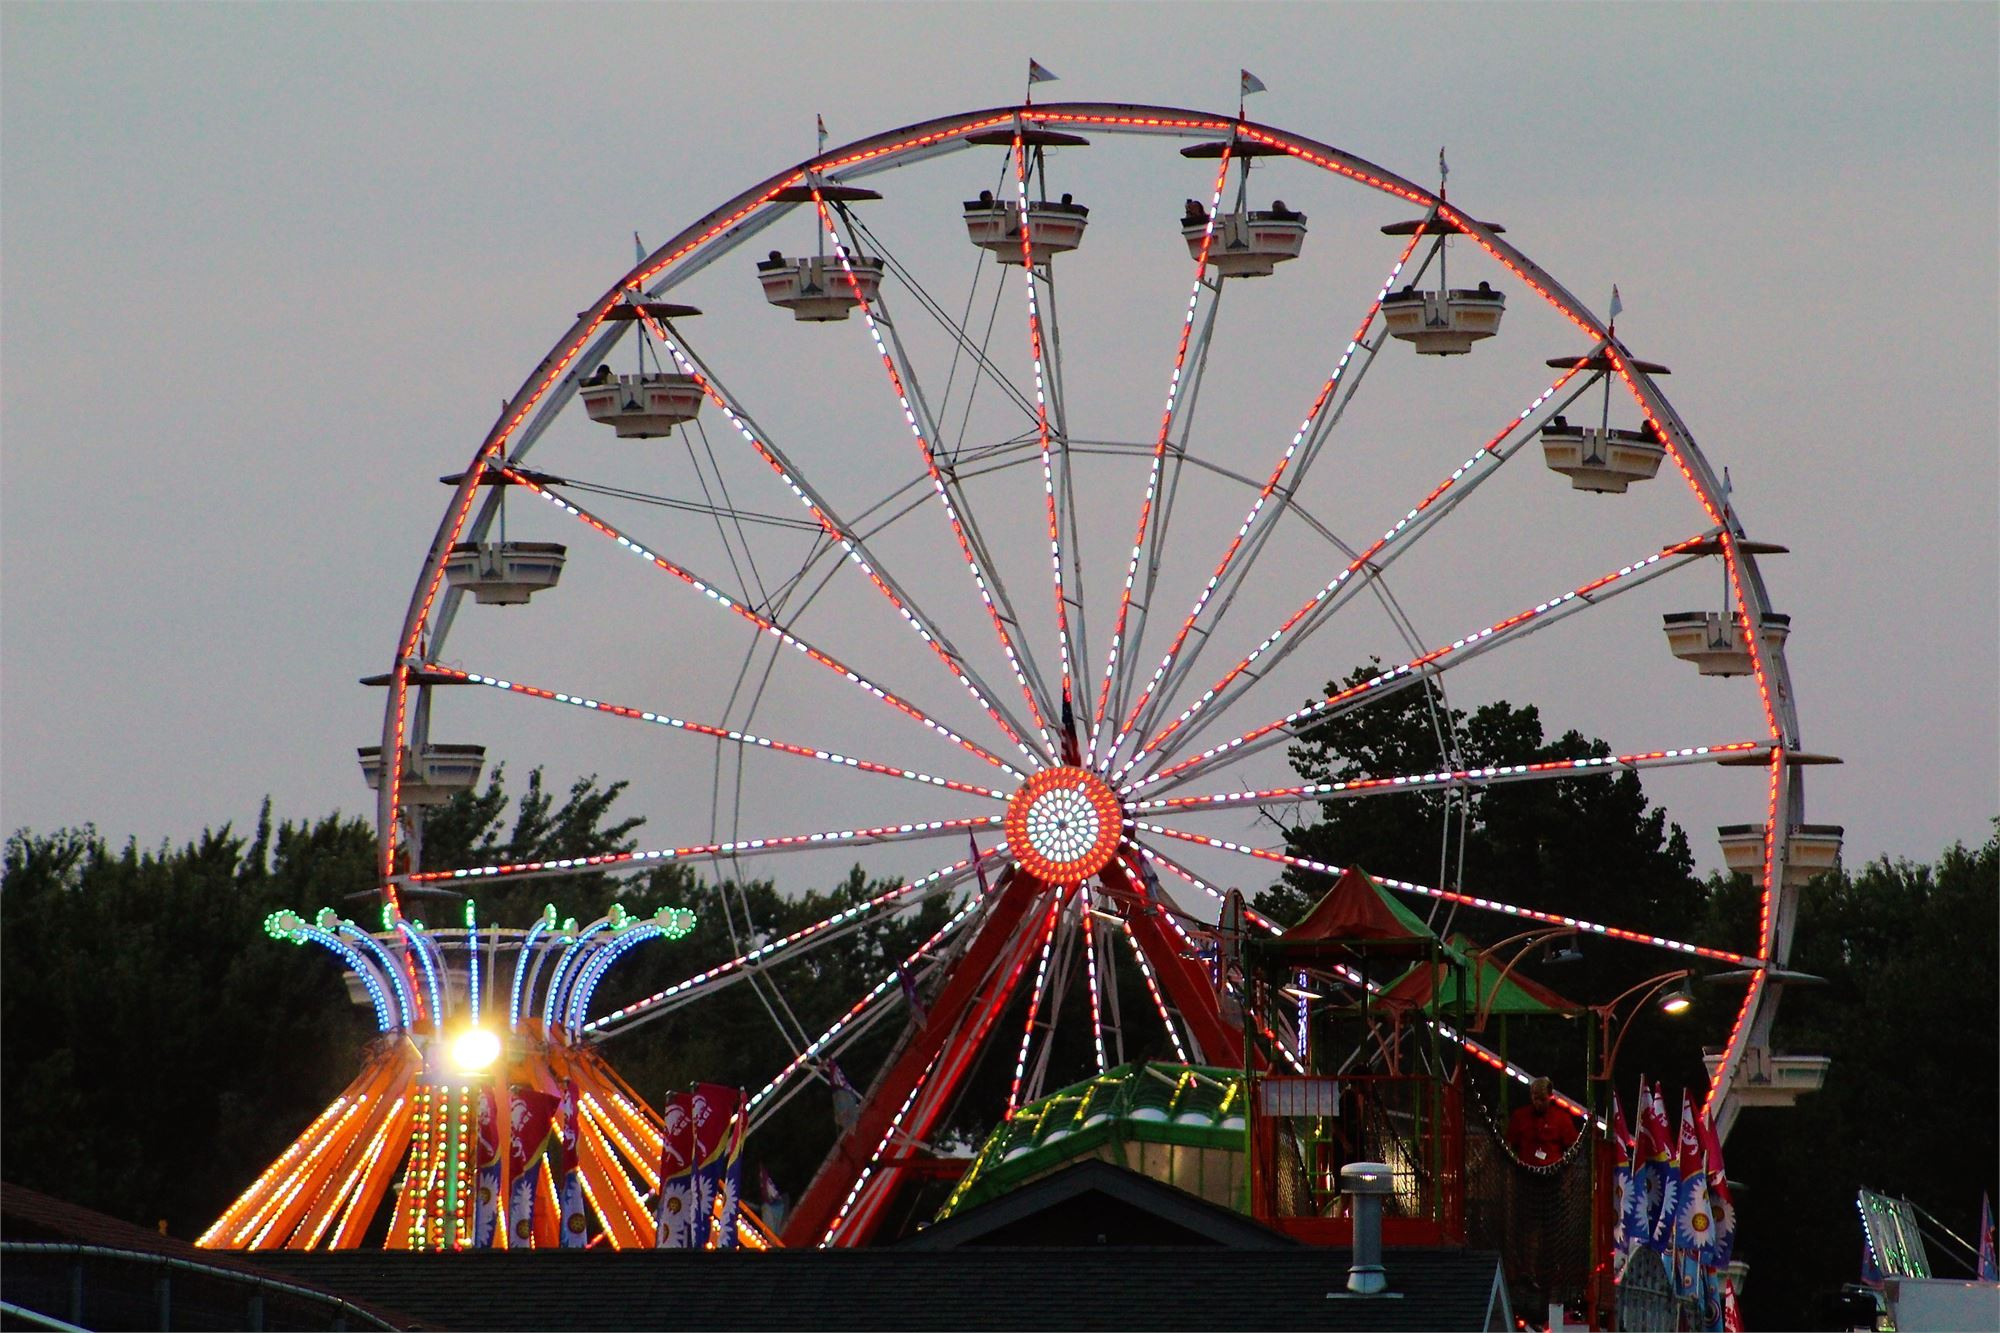 Carnival: North American Midway Entertainment